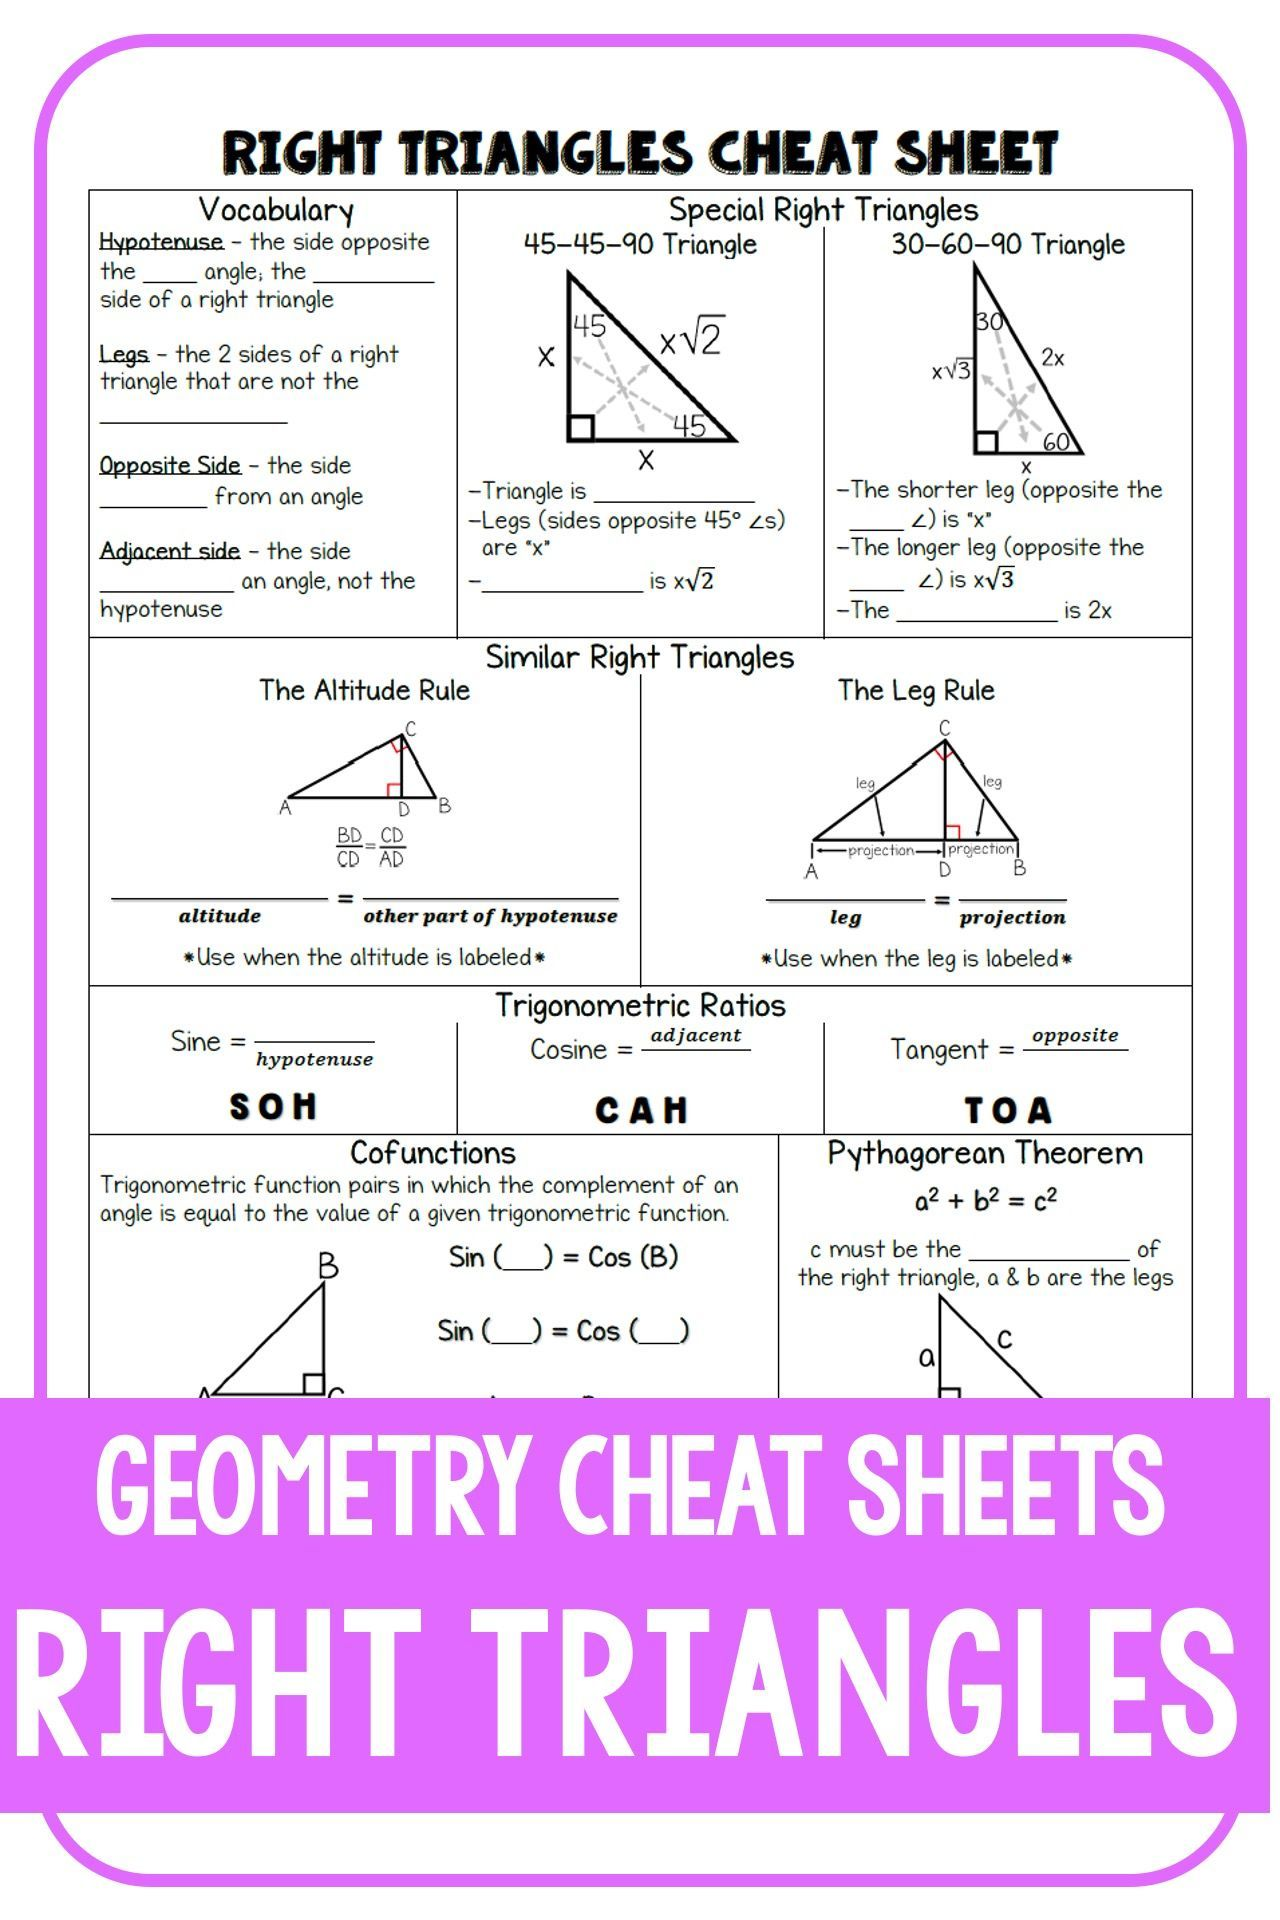 small resolution of Geometry Cheat Sheet: Right Triangles   High school math teacher